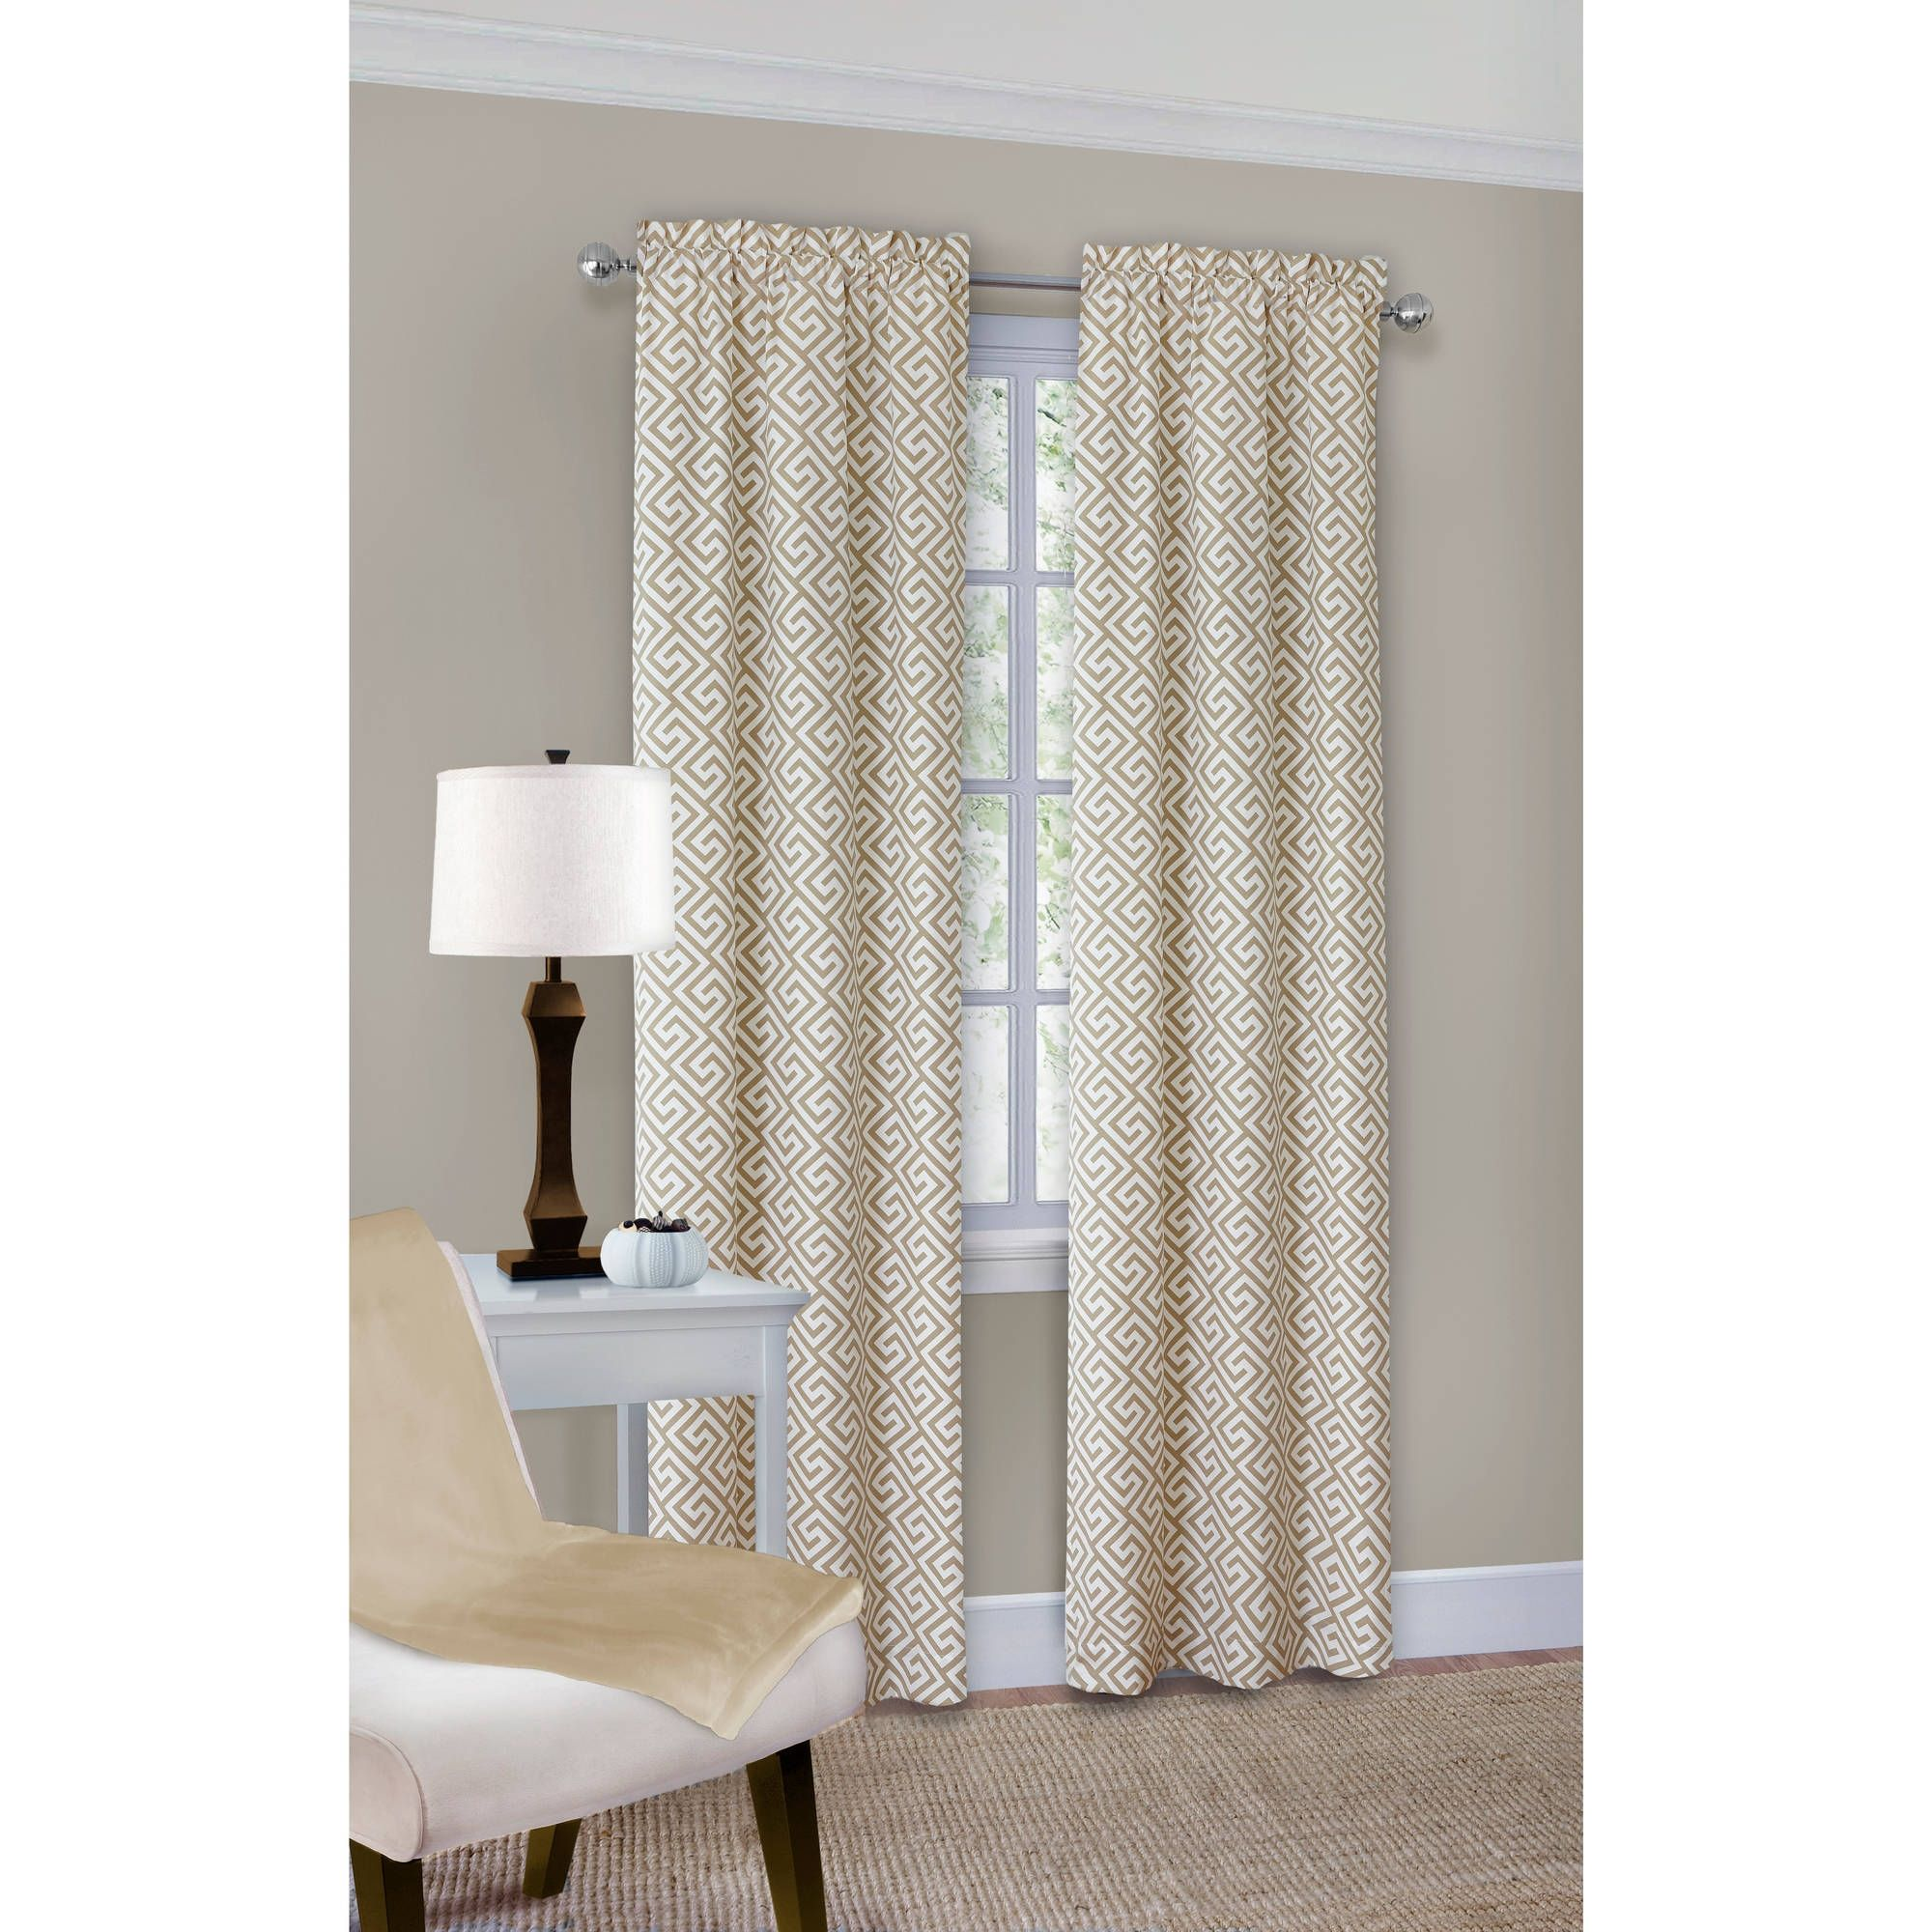 Window curtains length realtagfo pinterest